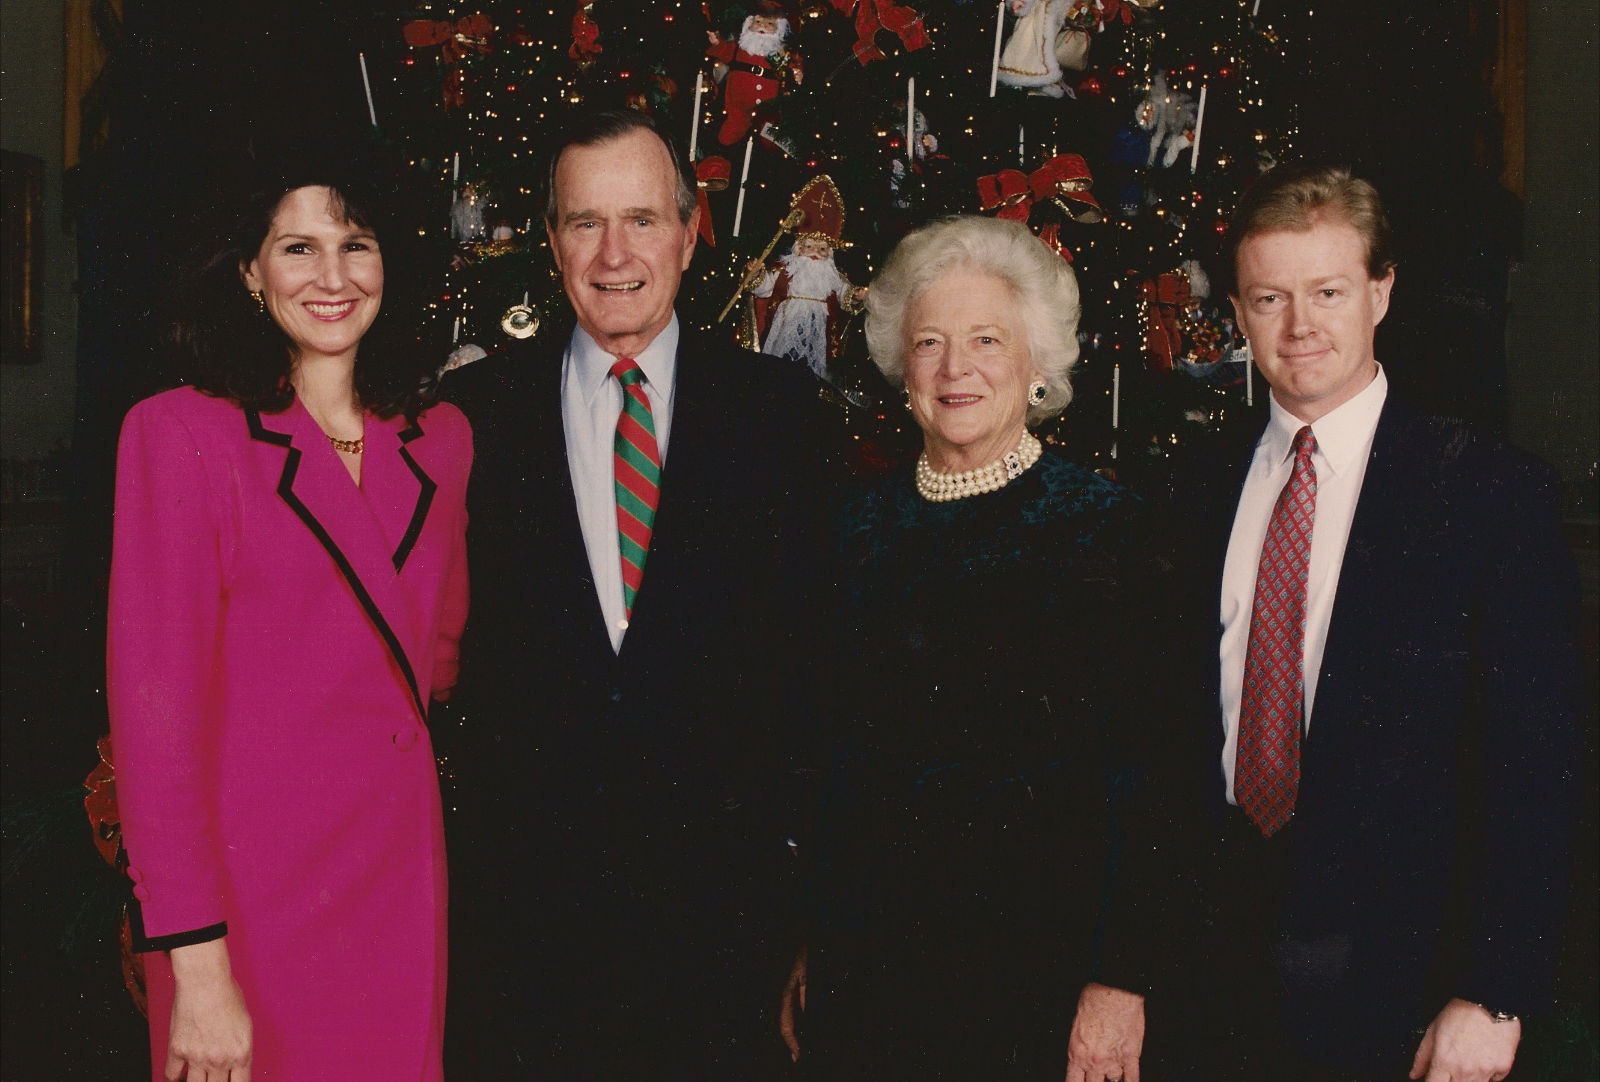 Dan Emmett & wife with George & Barbara Bush